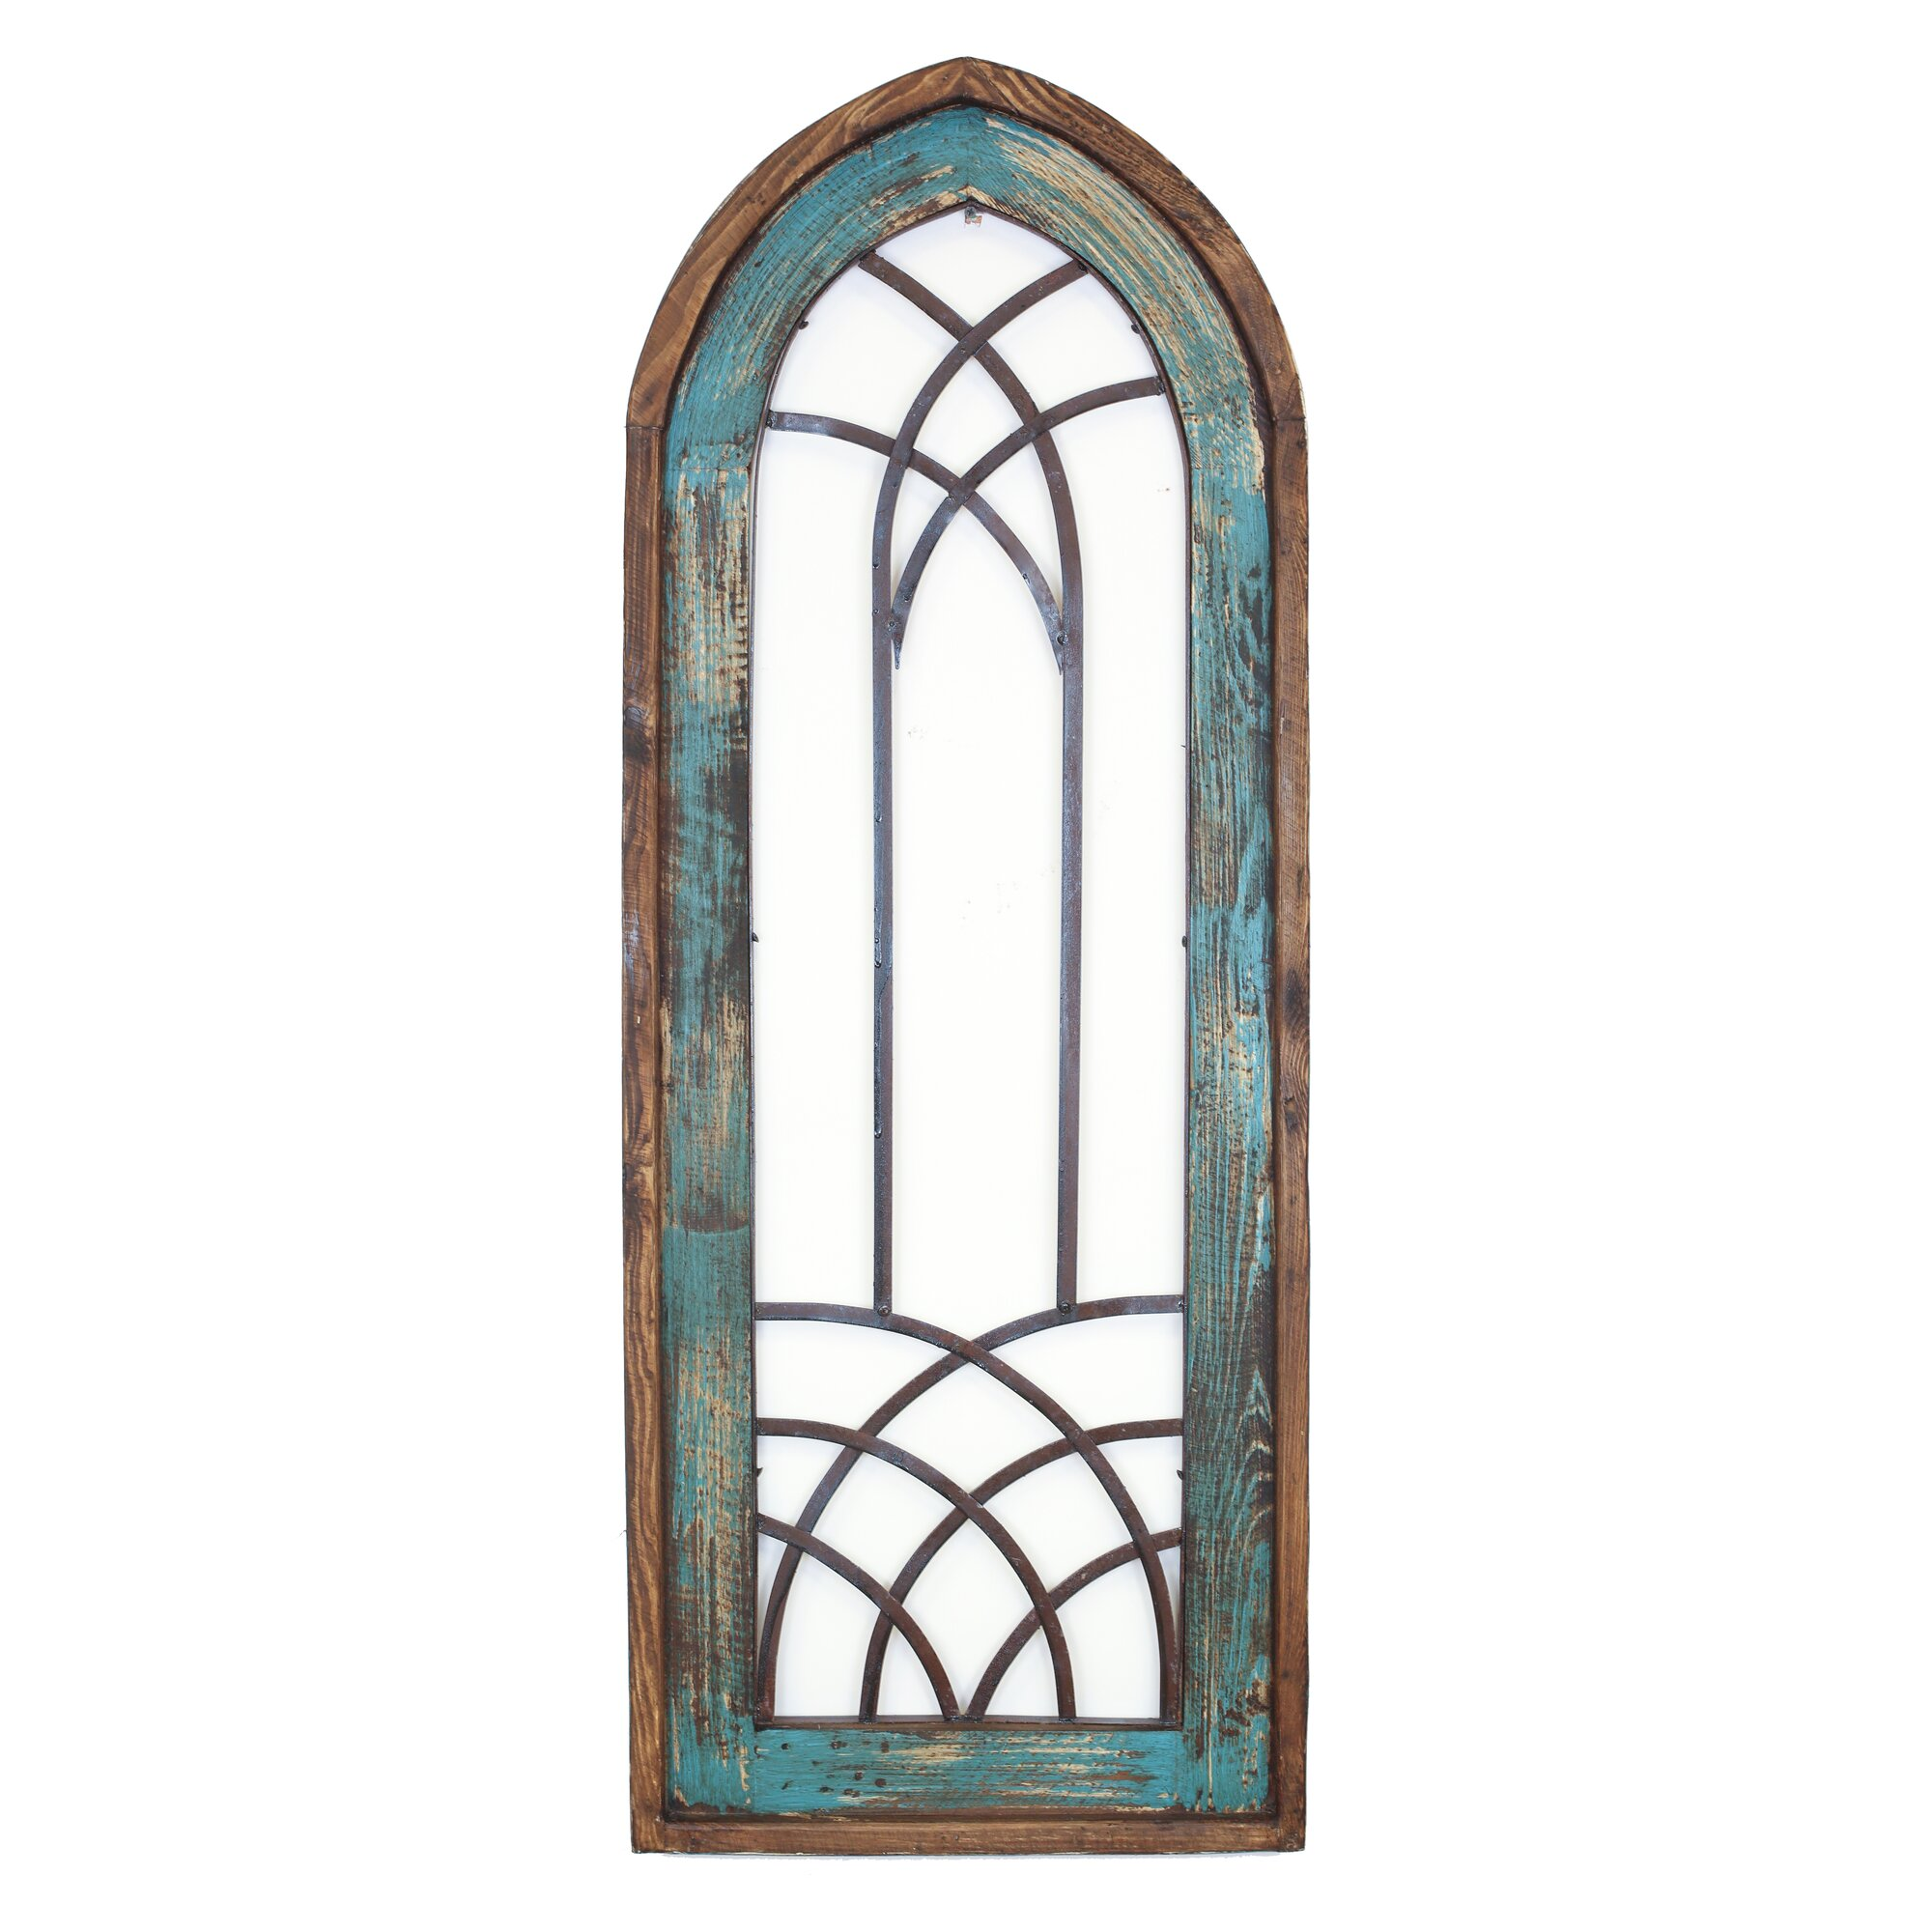 Myamigosimports valeria architectural window wall decor for Window arch wall decor